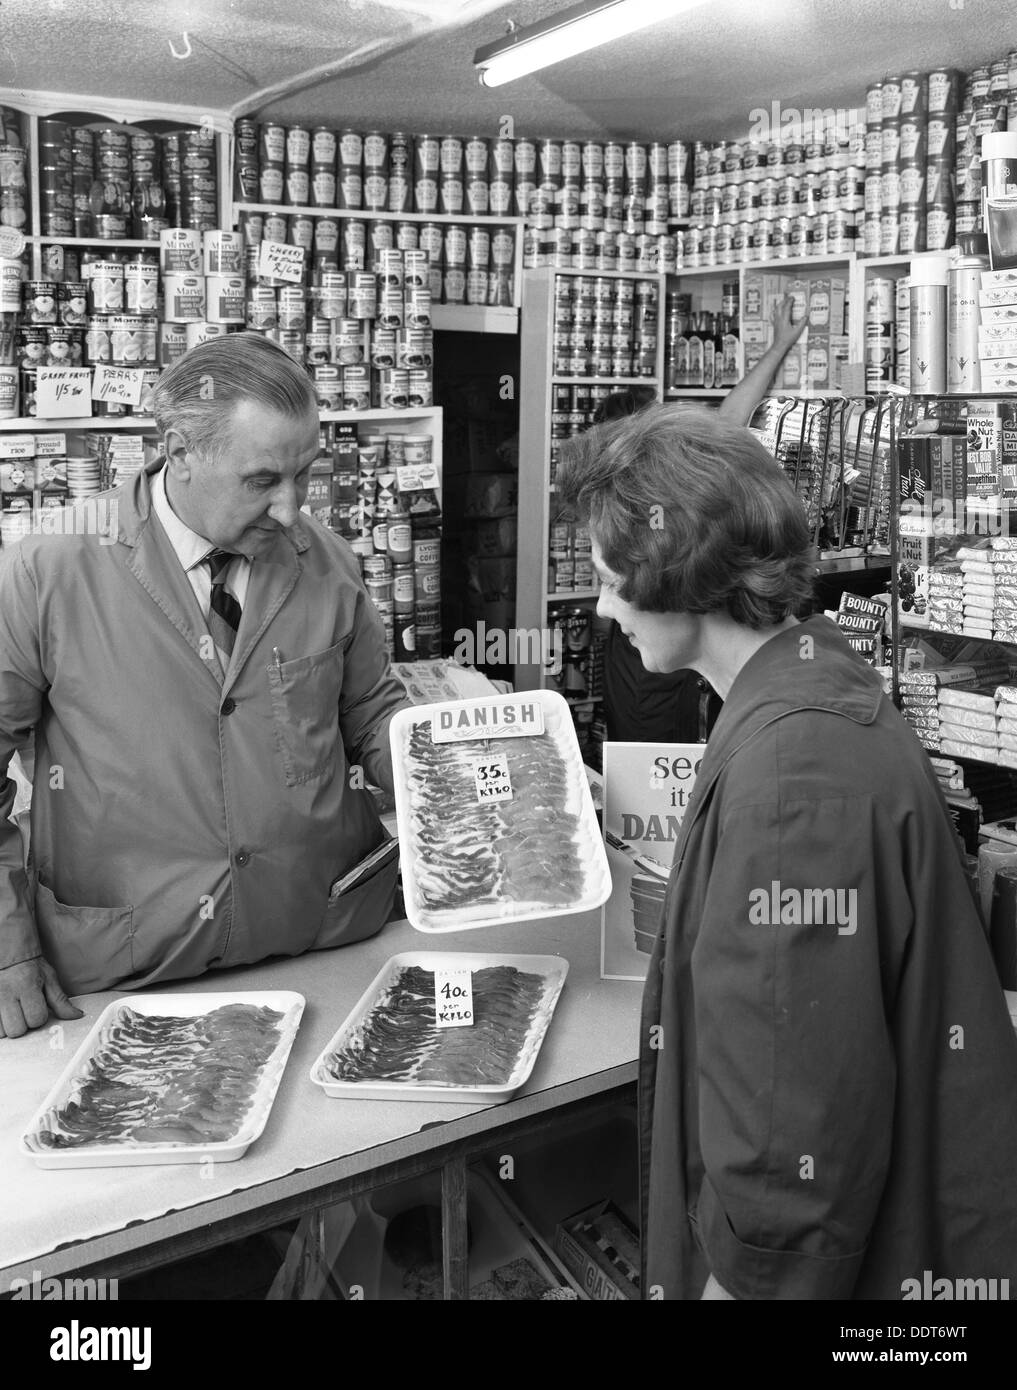 New metric system of selling bacon, Stocksbridge, Sheffield, South Yorkshire, 1966. Artist: Michael Walters - Stock Image